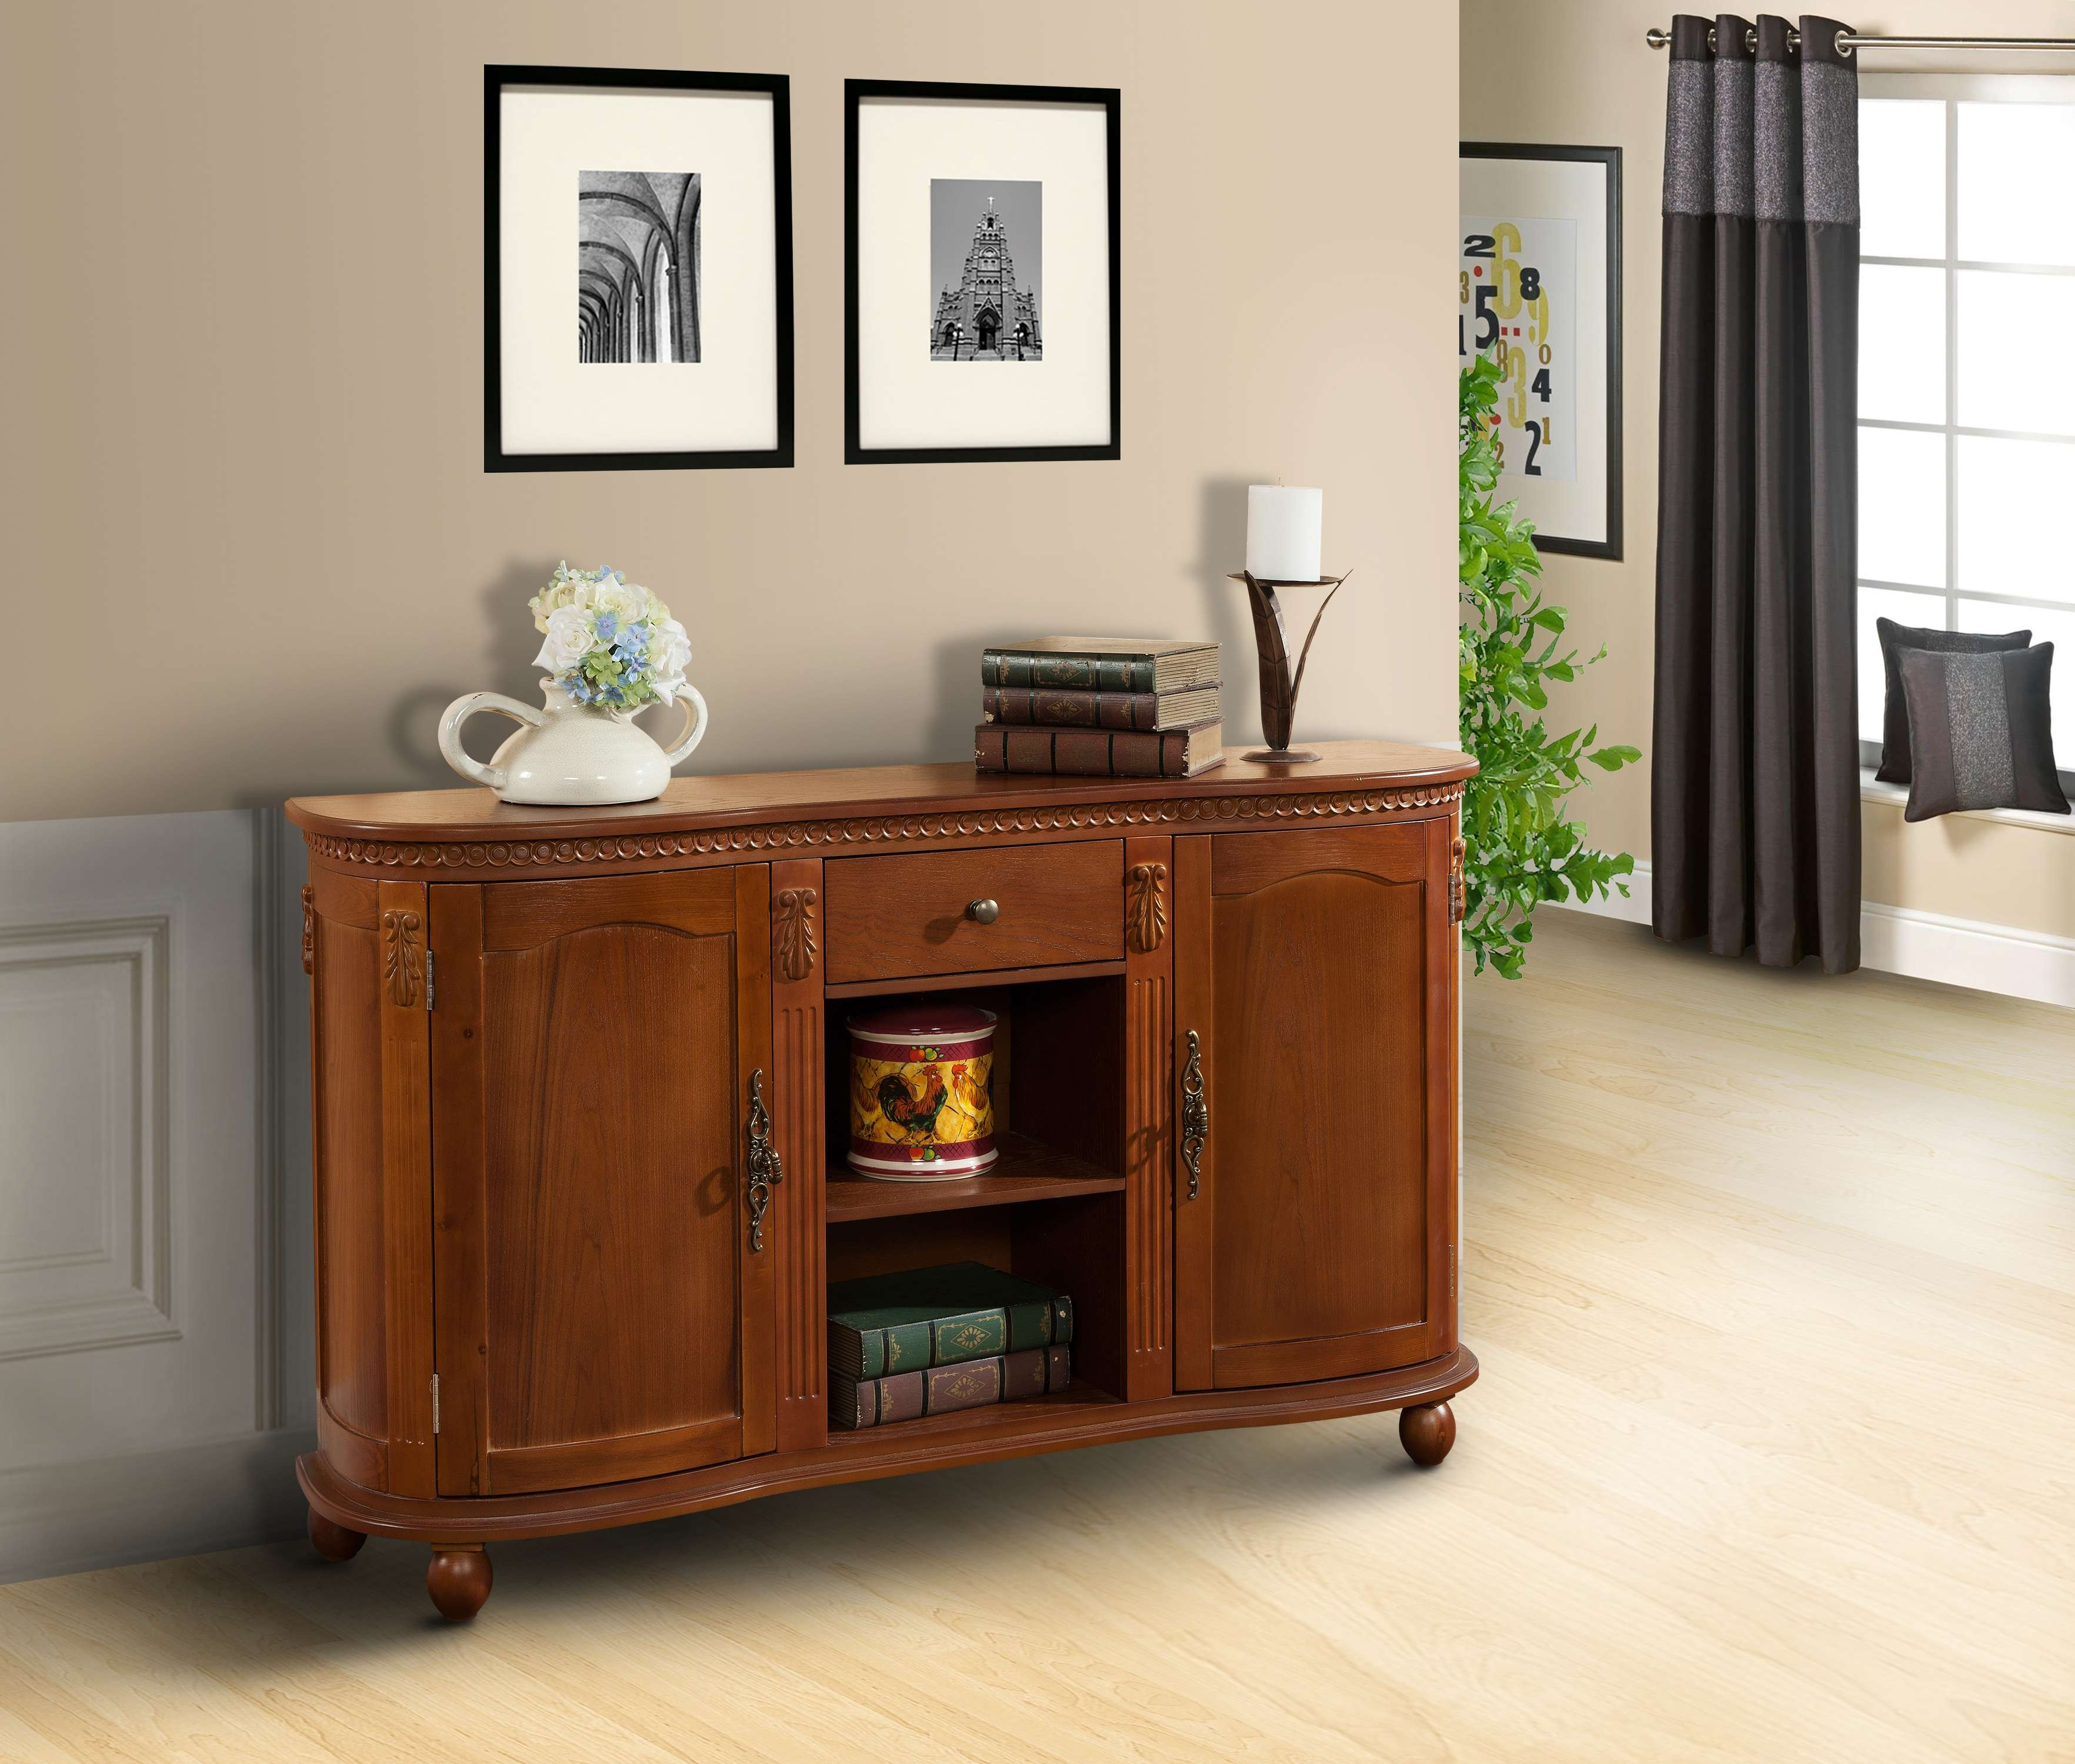 Walnut Wood Sideboard Buffet Console Table With Storage Drawer Within Sideboards Buffet Furniture (View 13 of 20)